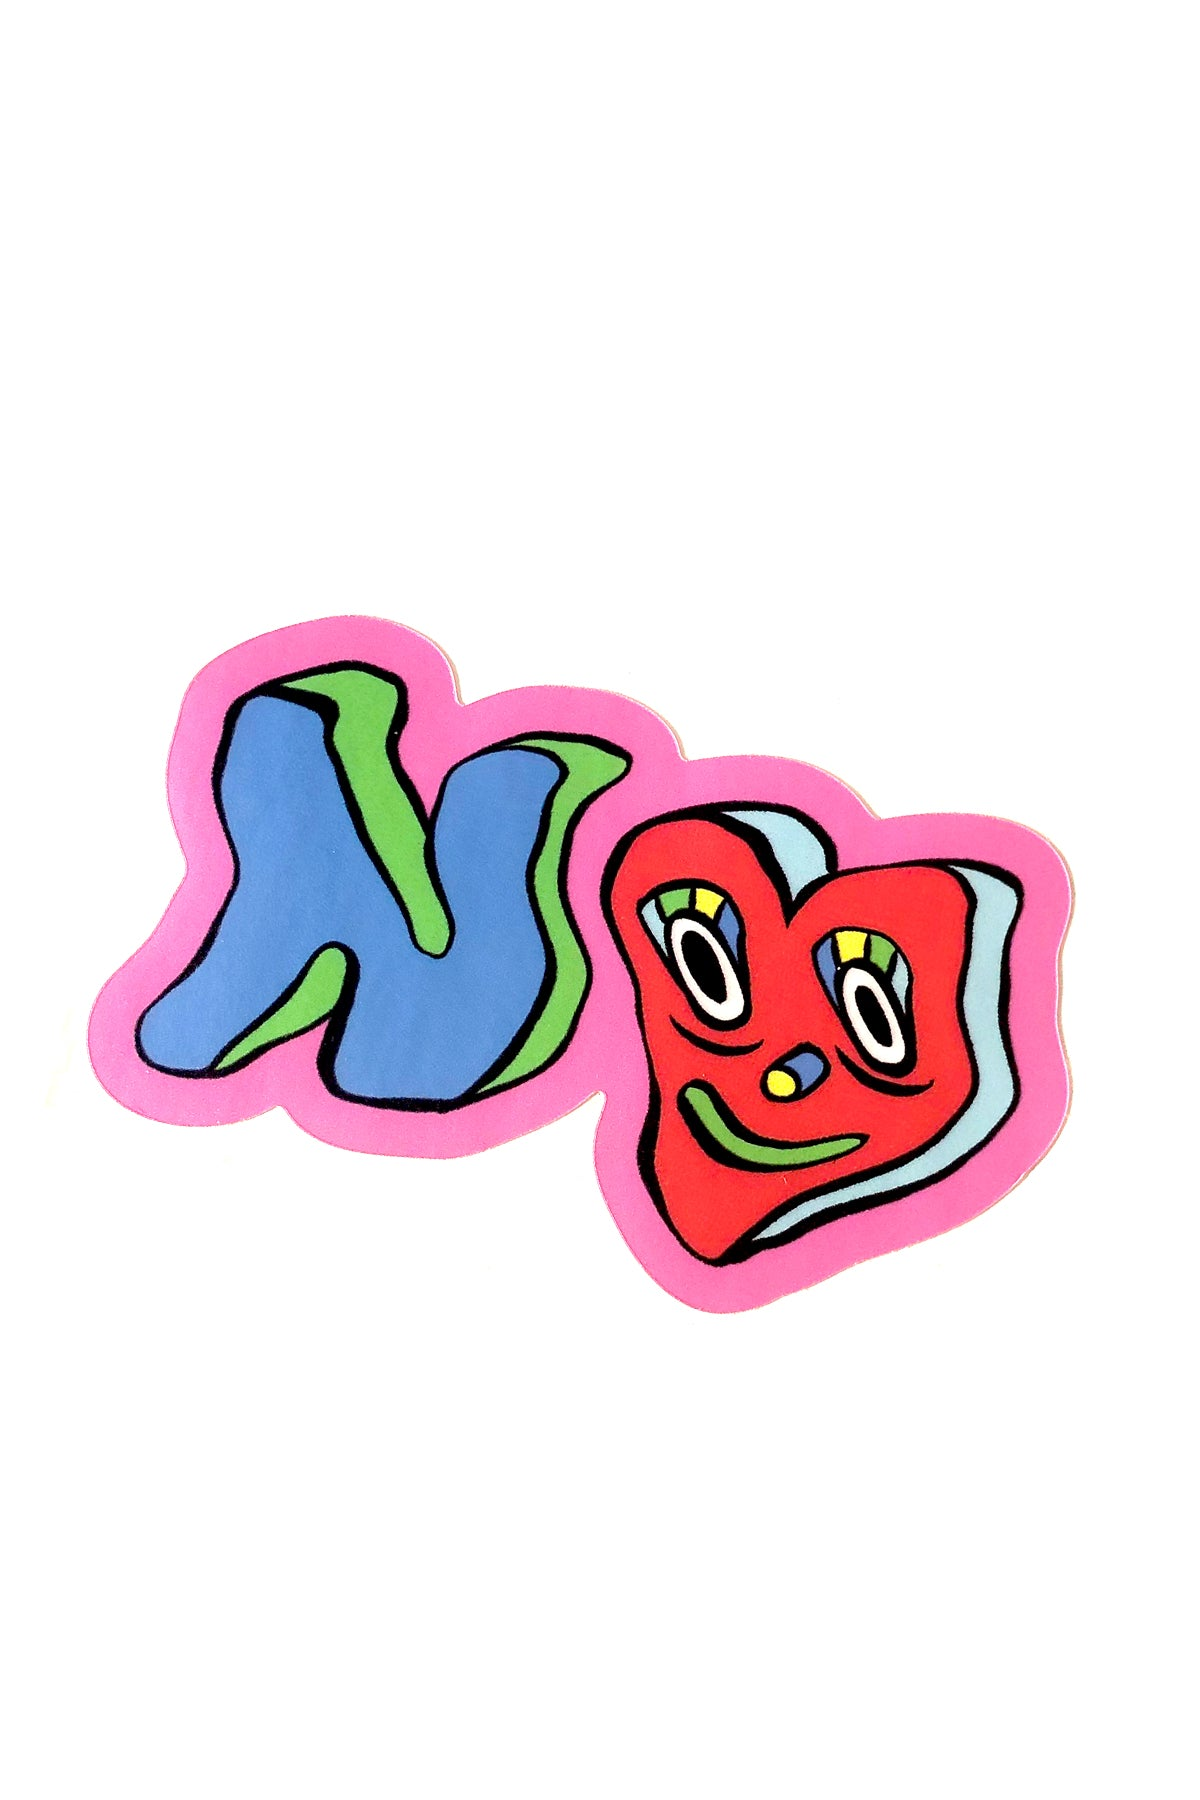 "♥ ""NO"" ♥ STICKER"